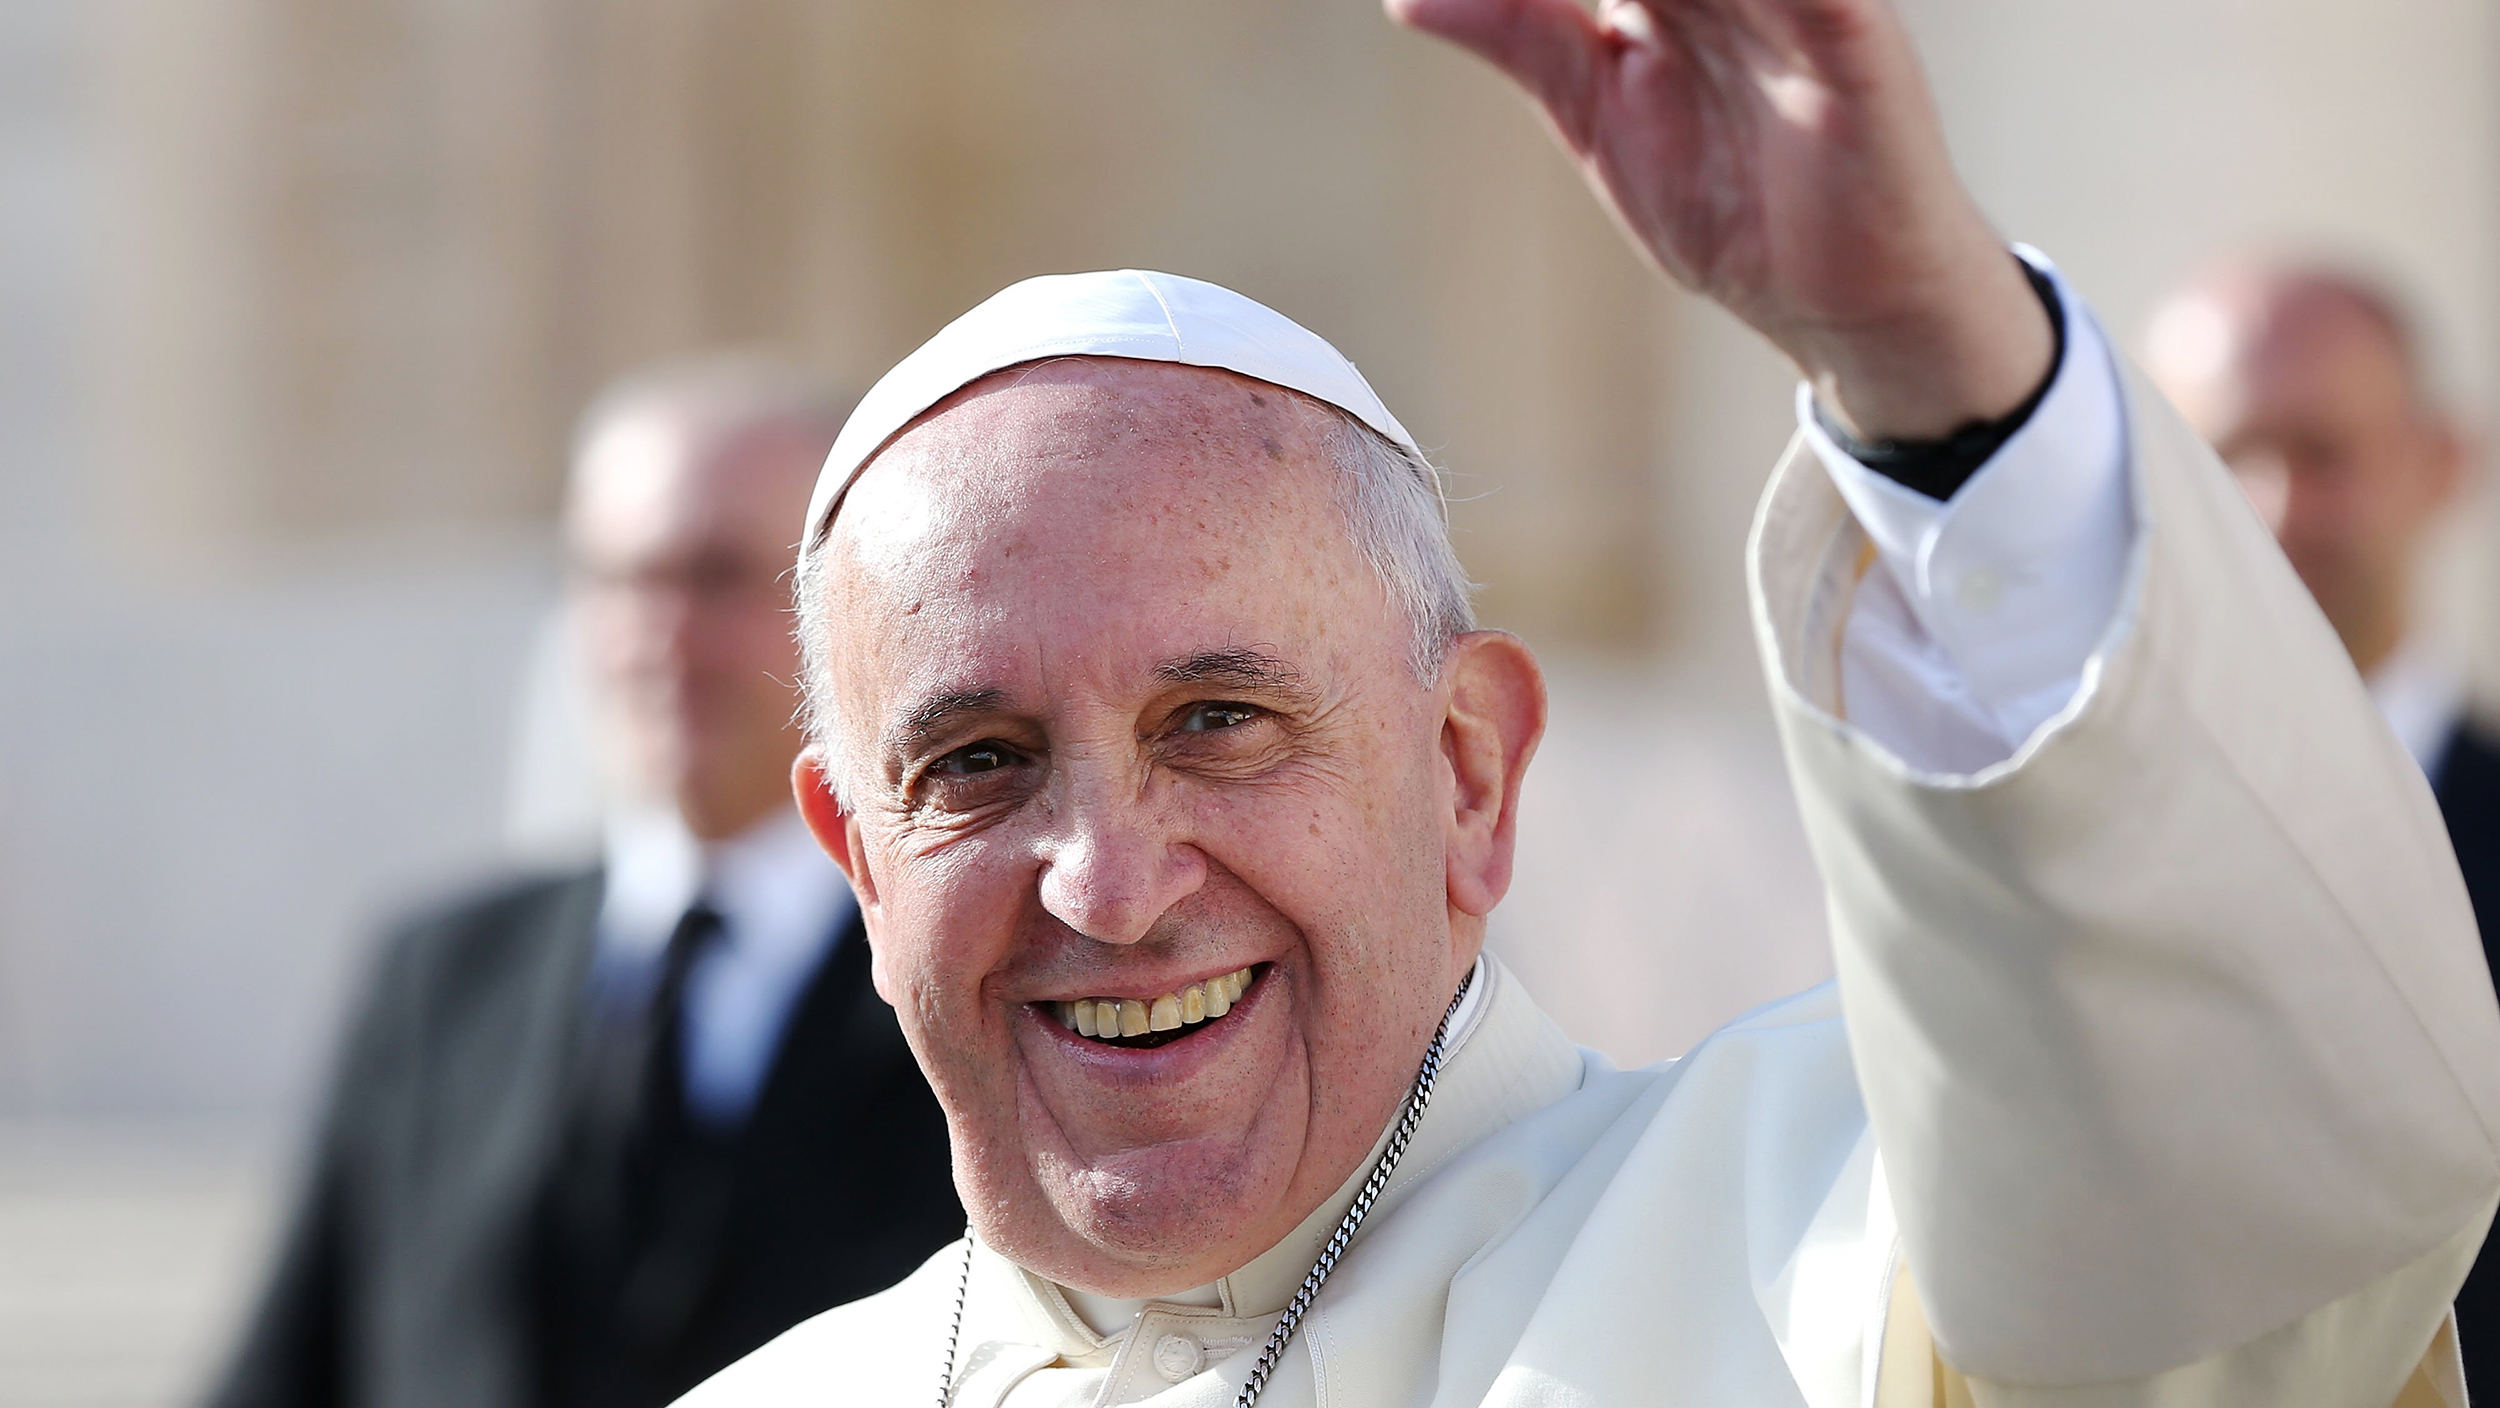 Pope Francis Is Raffling Off Gifts To Him To Benefit Poor